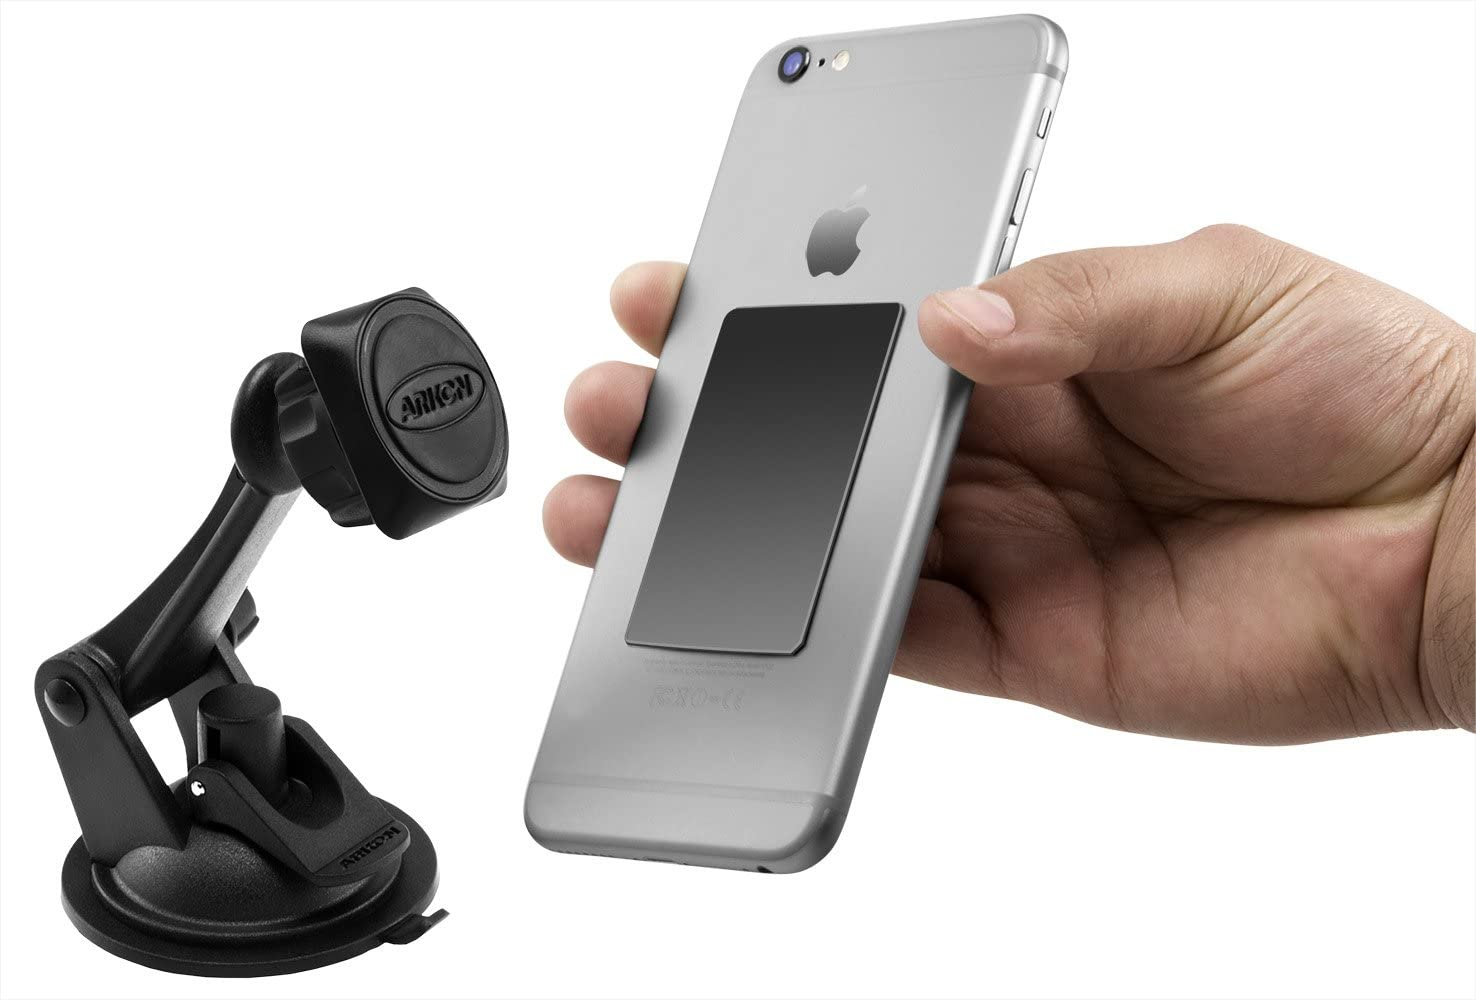 Arkon Magnetic Phone Mount Holder for iPhone X 8 7 6S Plus iPhone 8 7 6S 6 Galaxy Note 8 5 S8 S7 Retail Black